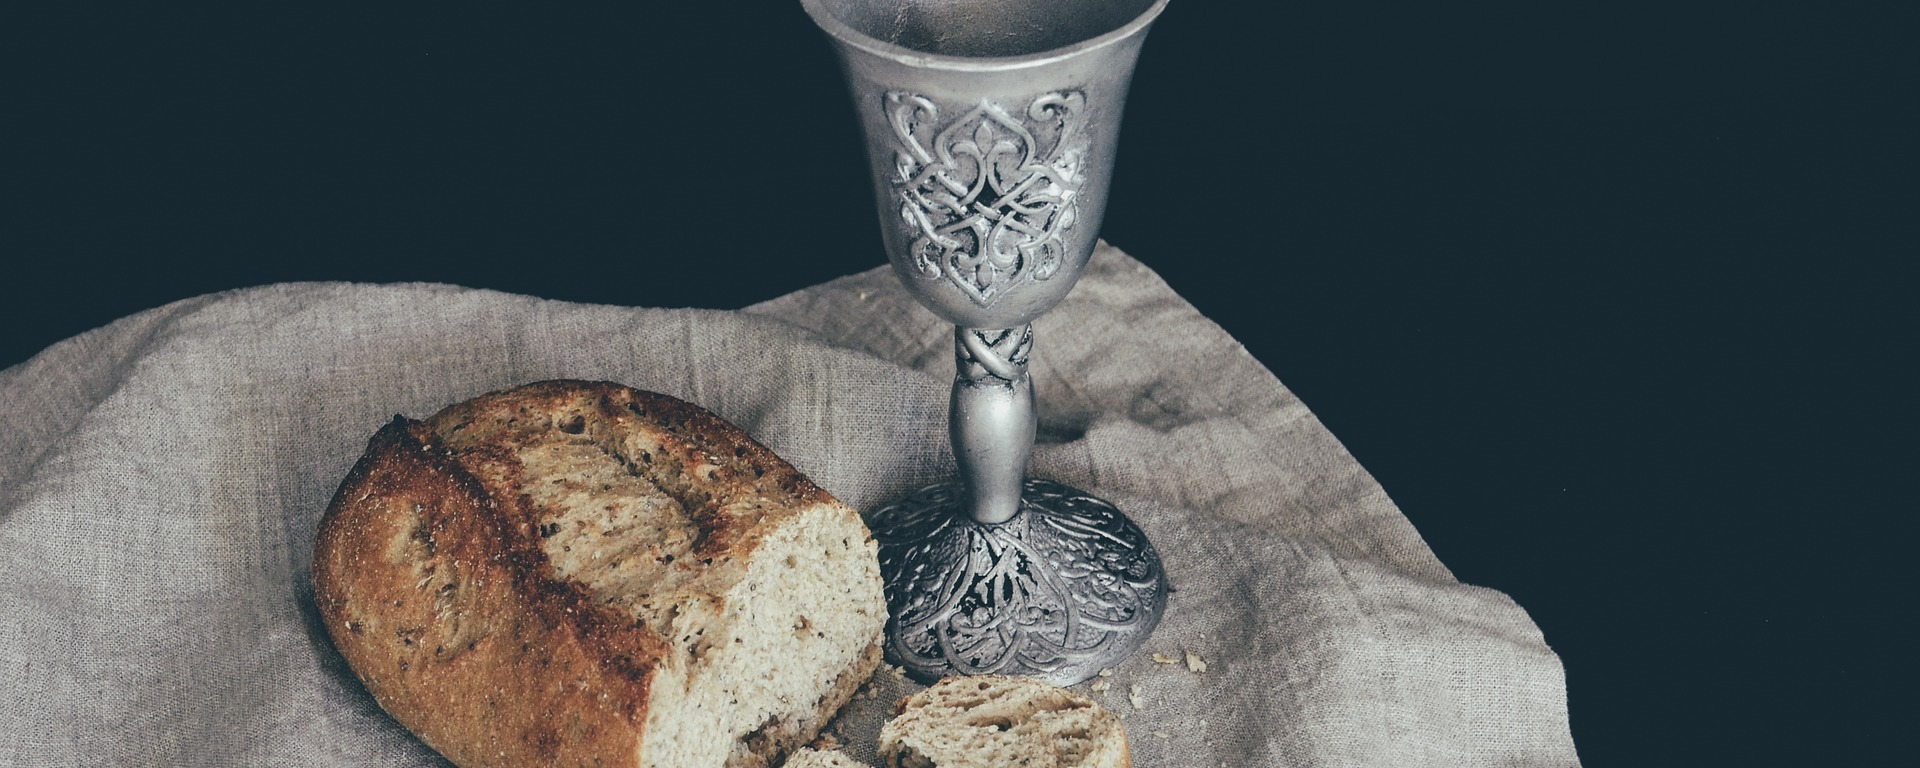 bread,communion,eucharist,church,religion,christianity,faith,catholic,chalice,worship,cup,spiritual,sacred,hope,christ,wine,religious,holy,jesus, DON CHARISMA